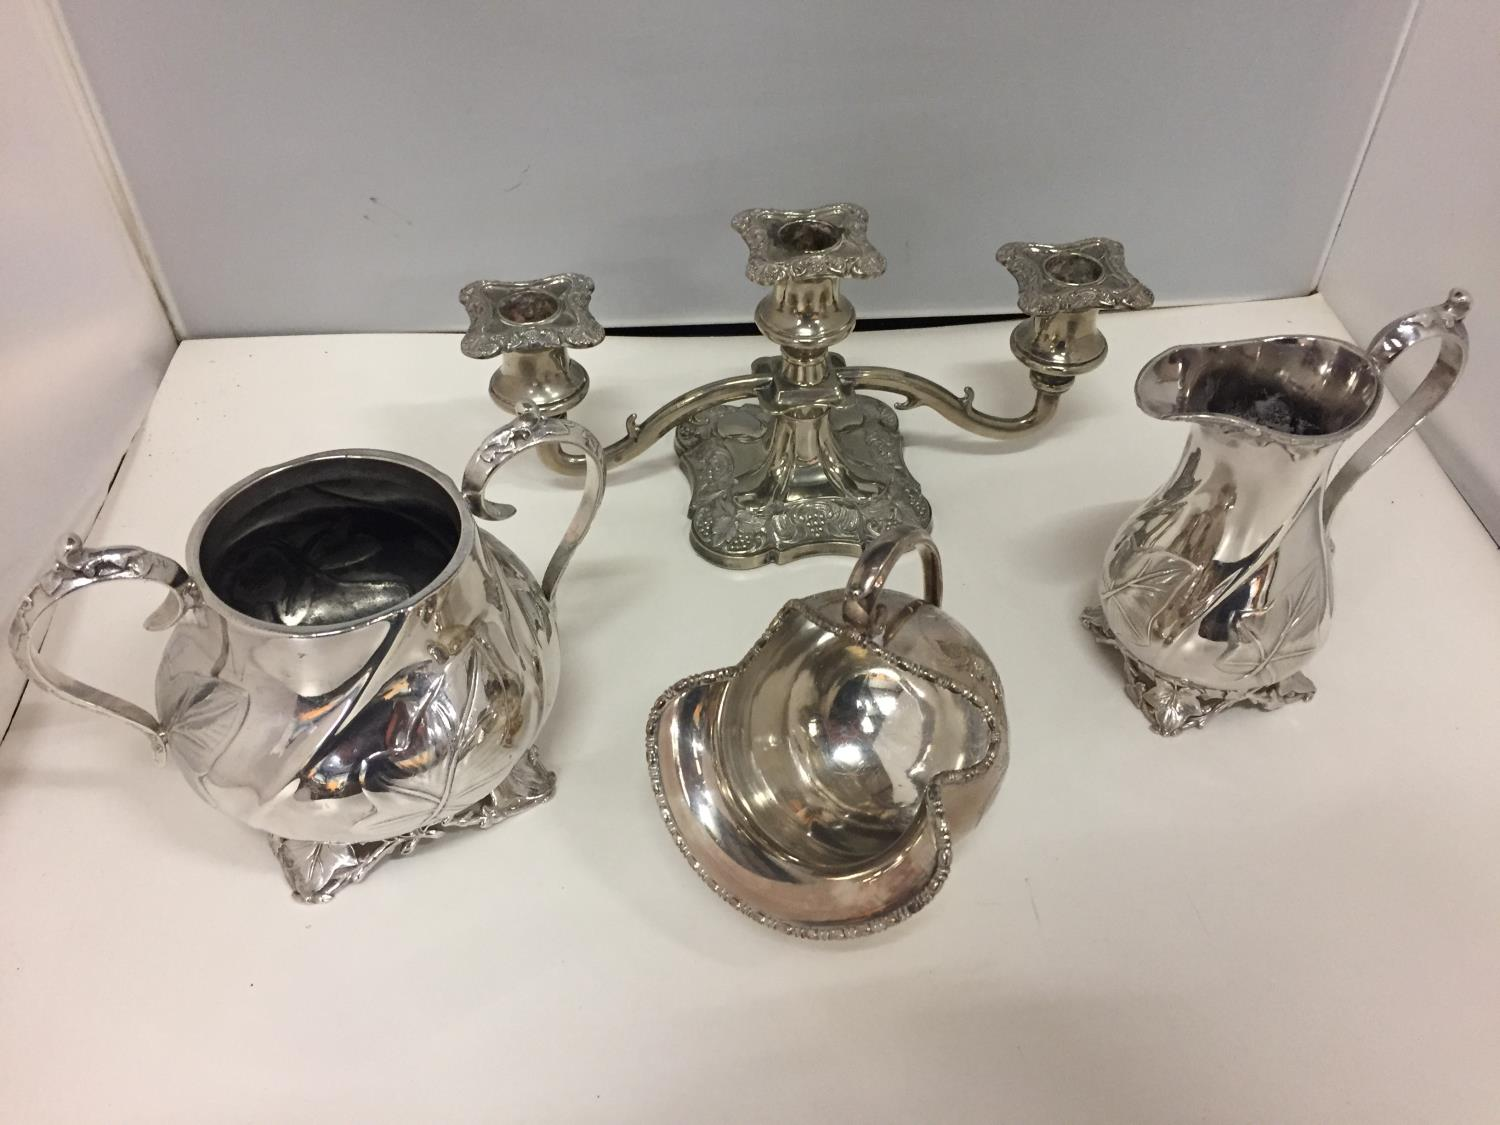 A SELECTION OF SILVER PLATED ITEMS TO INCLUDE A JUG, TWIN HANDLED VESSEL, CANDELABRA ETC